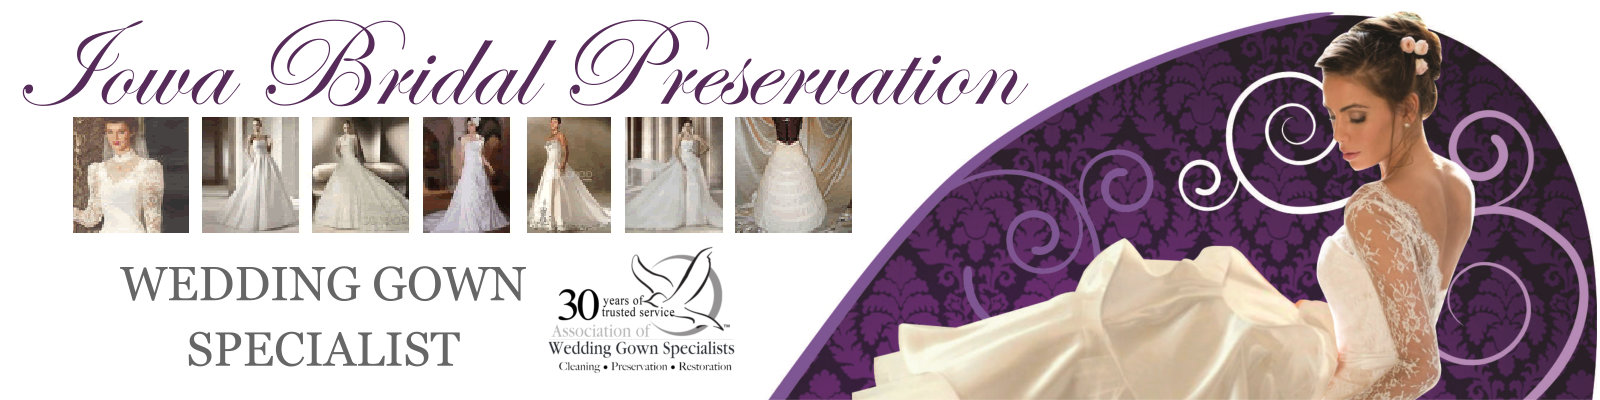 Welcome Iowa Bridal Preservation,Combination Lace Dress Styles For Wedding Guest